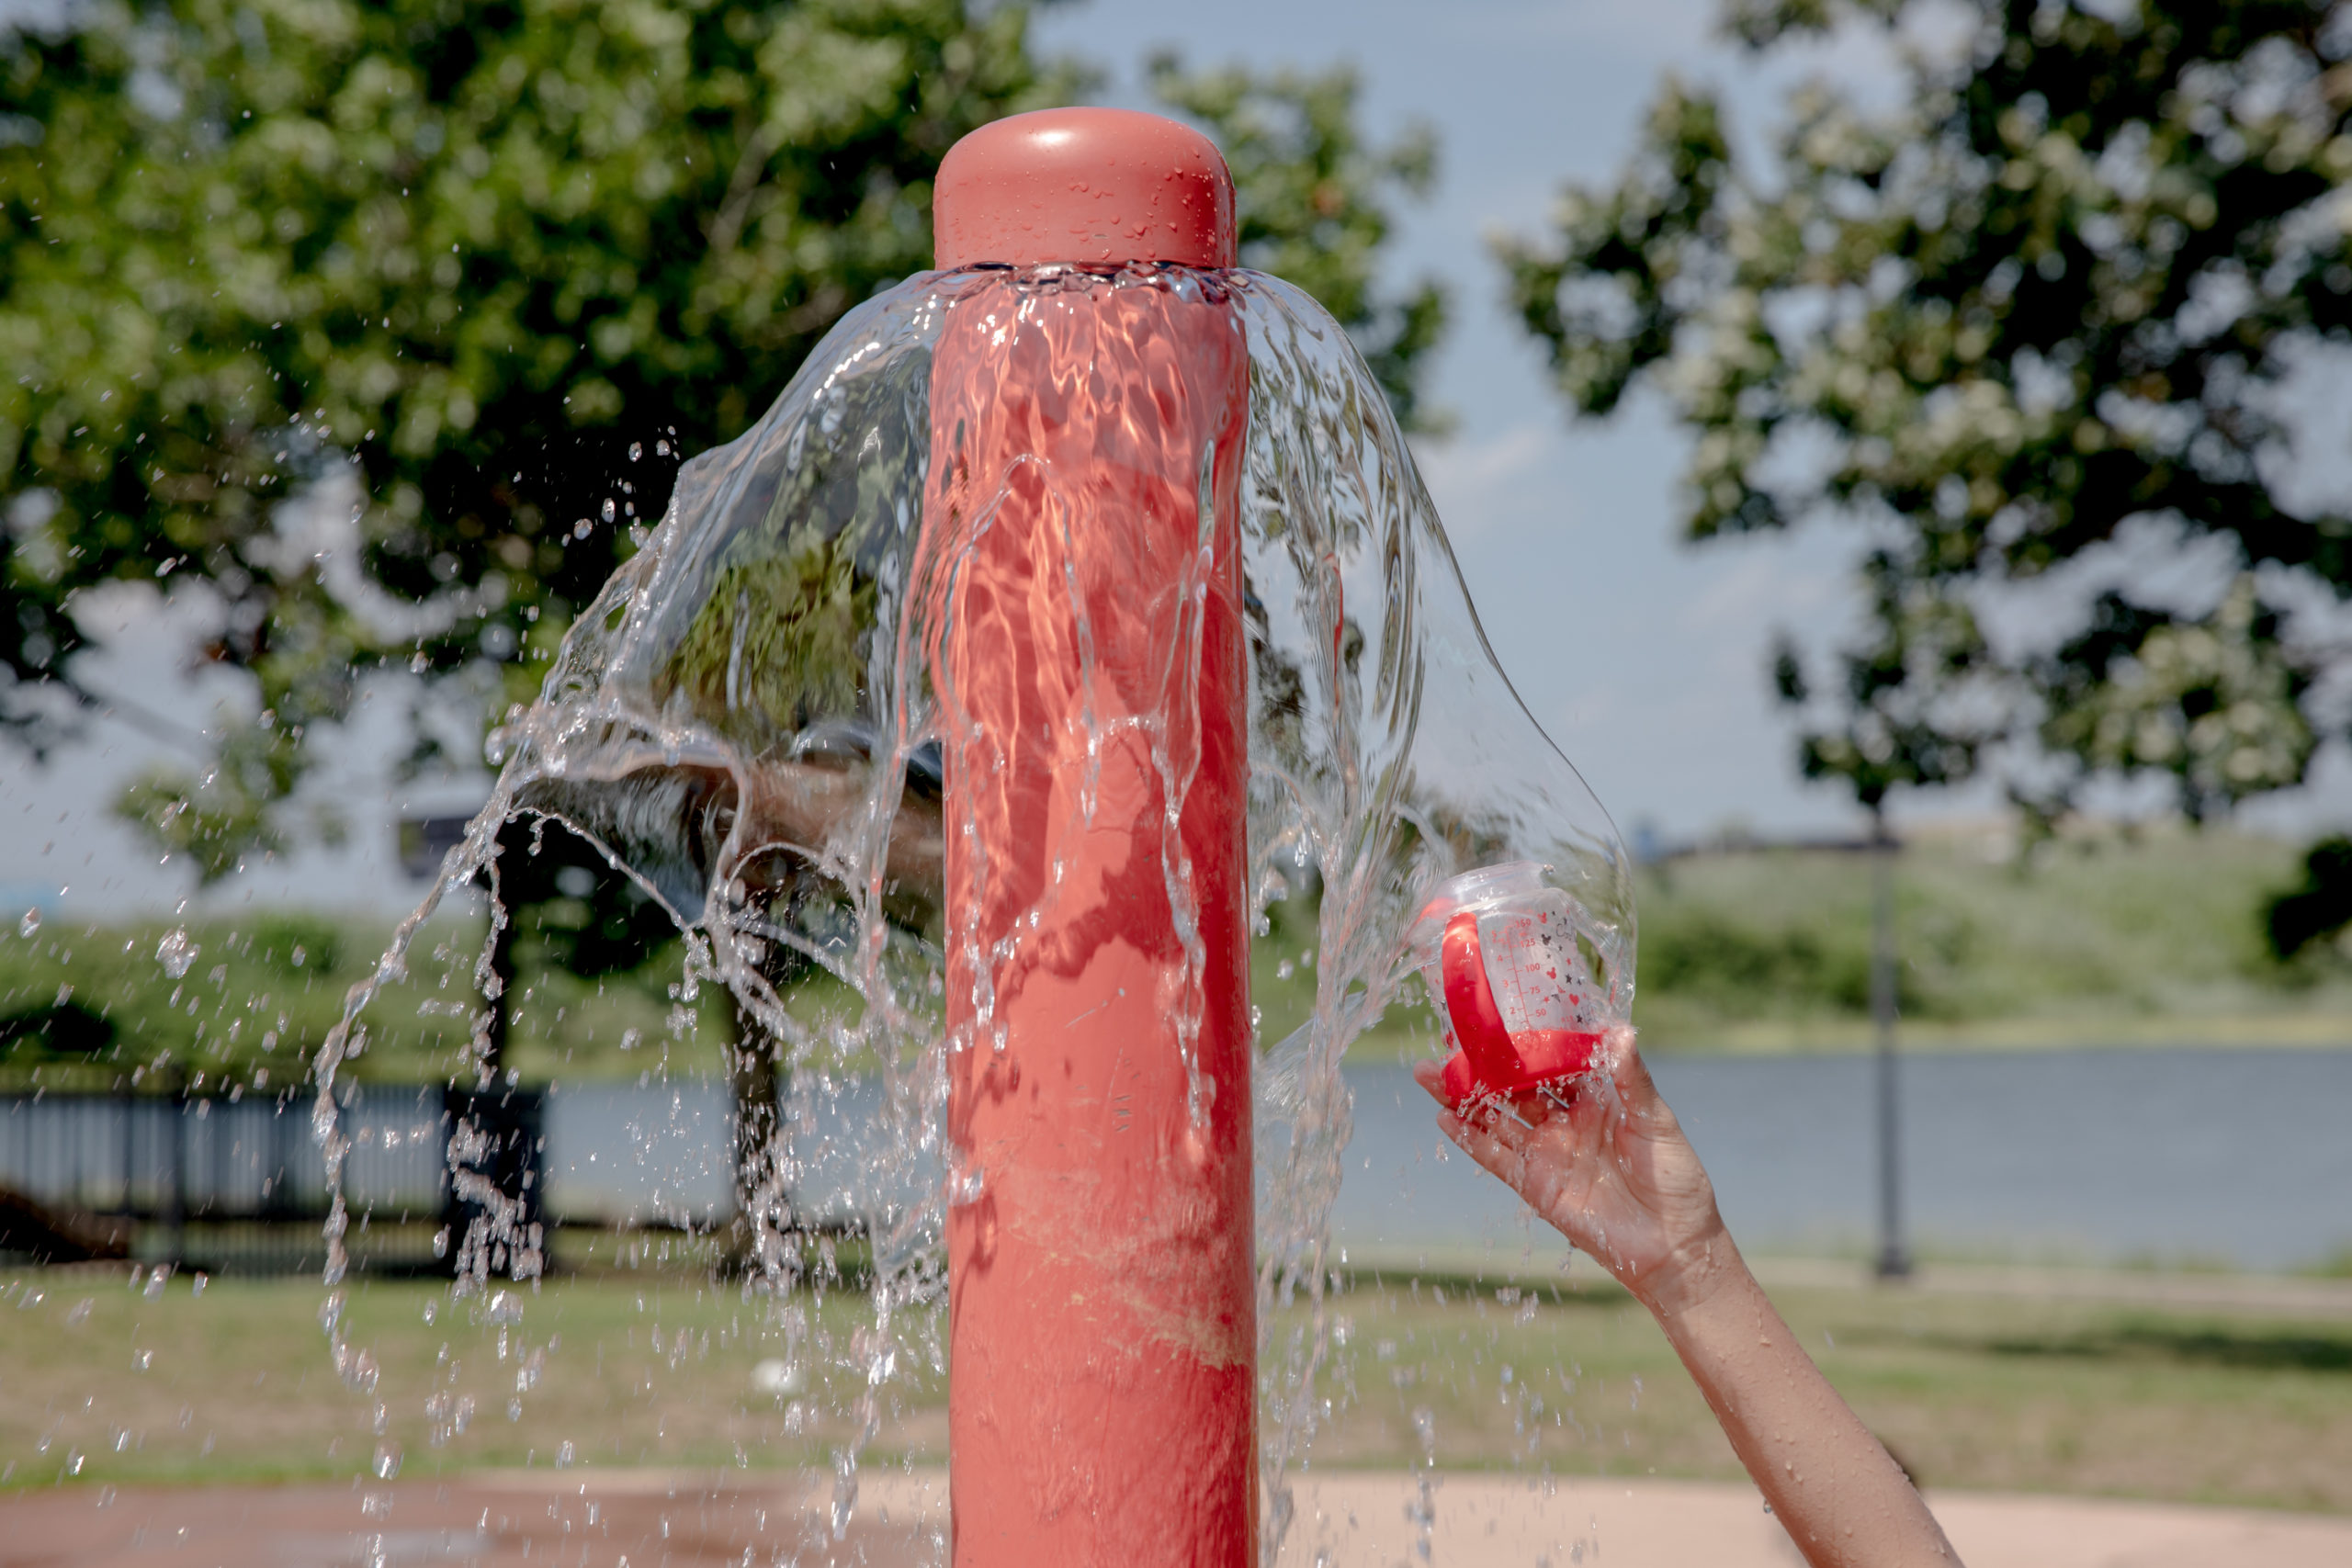 Photo story: As temperatures soared, people kept cool in city parks